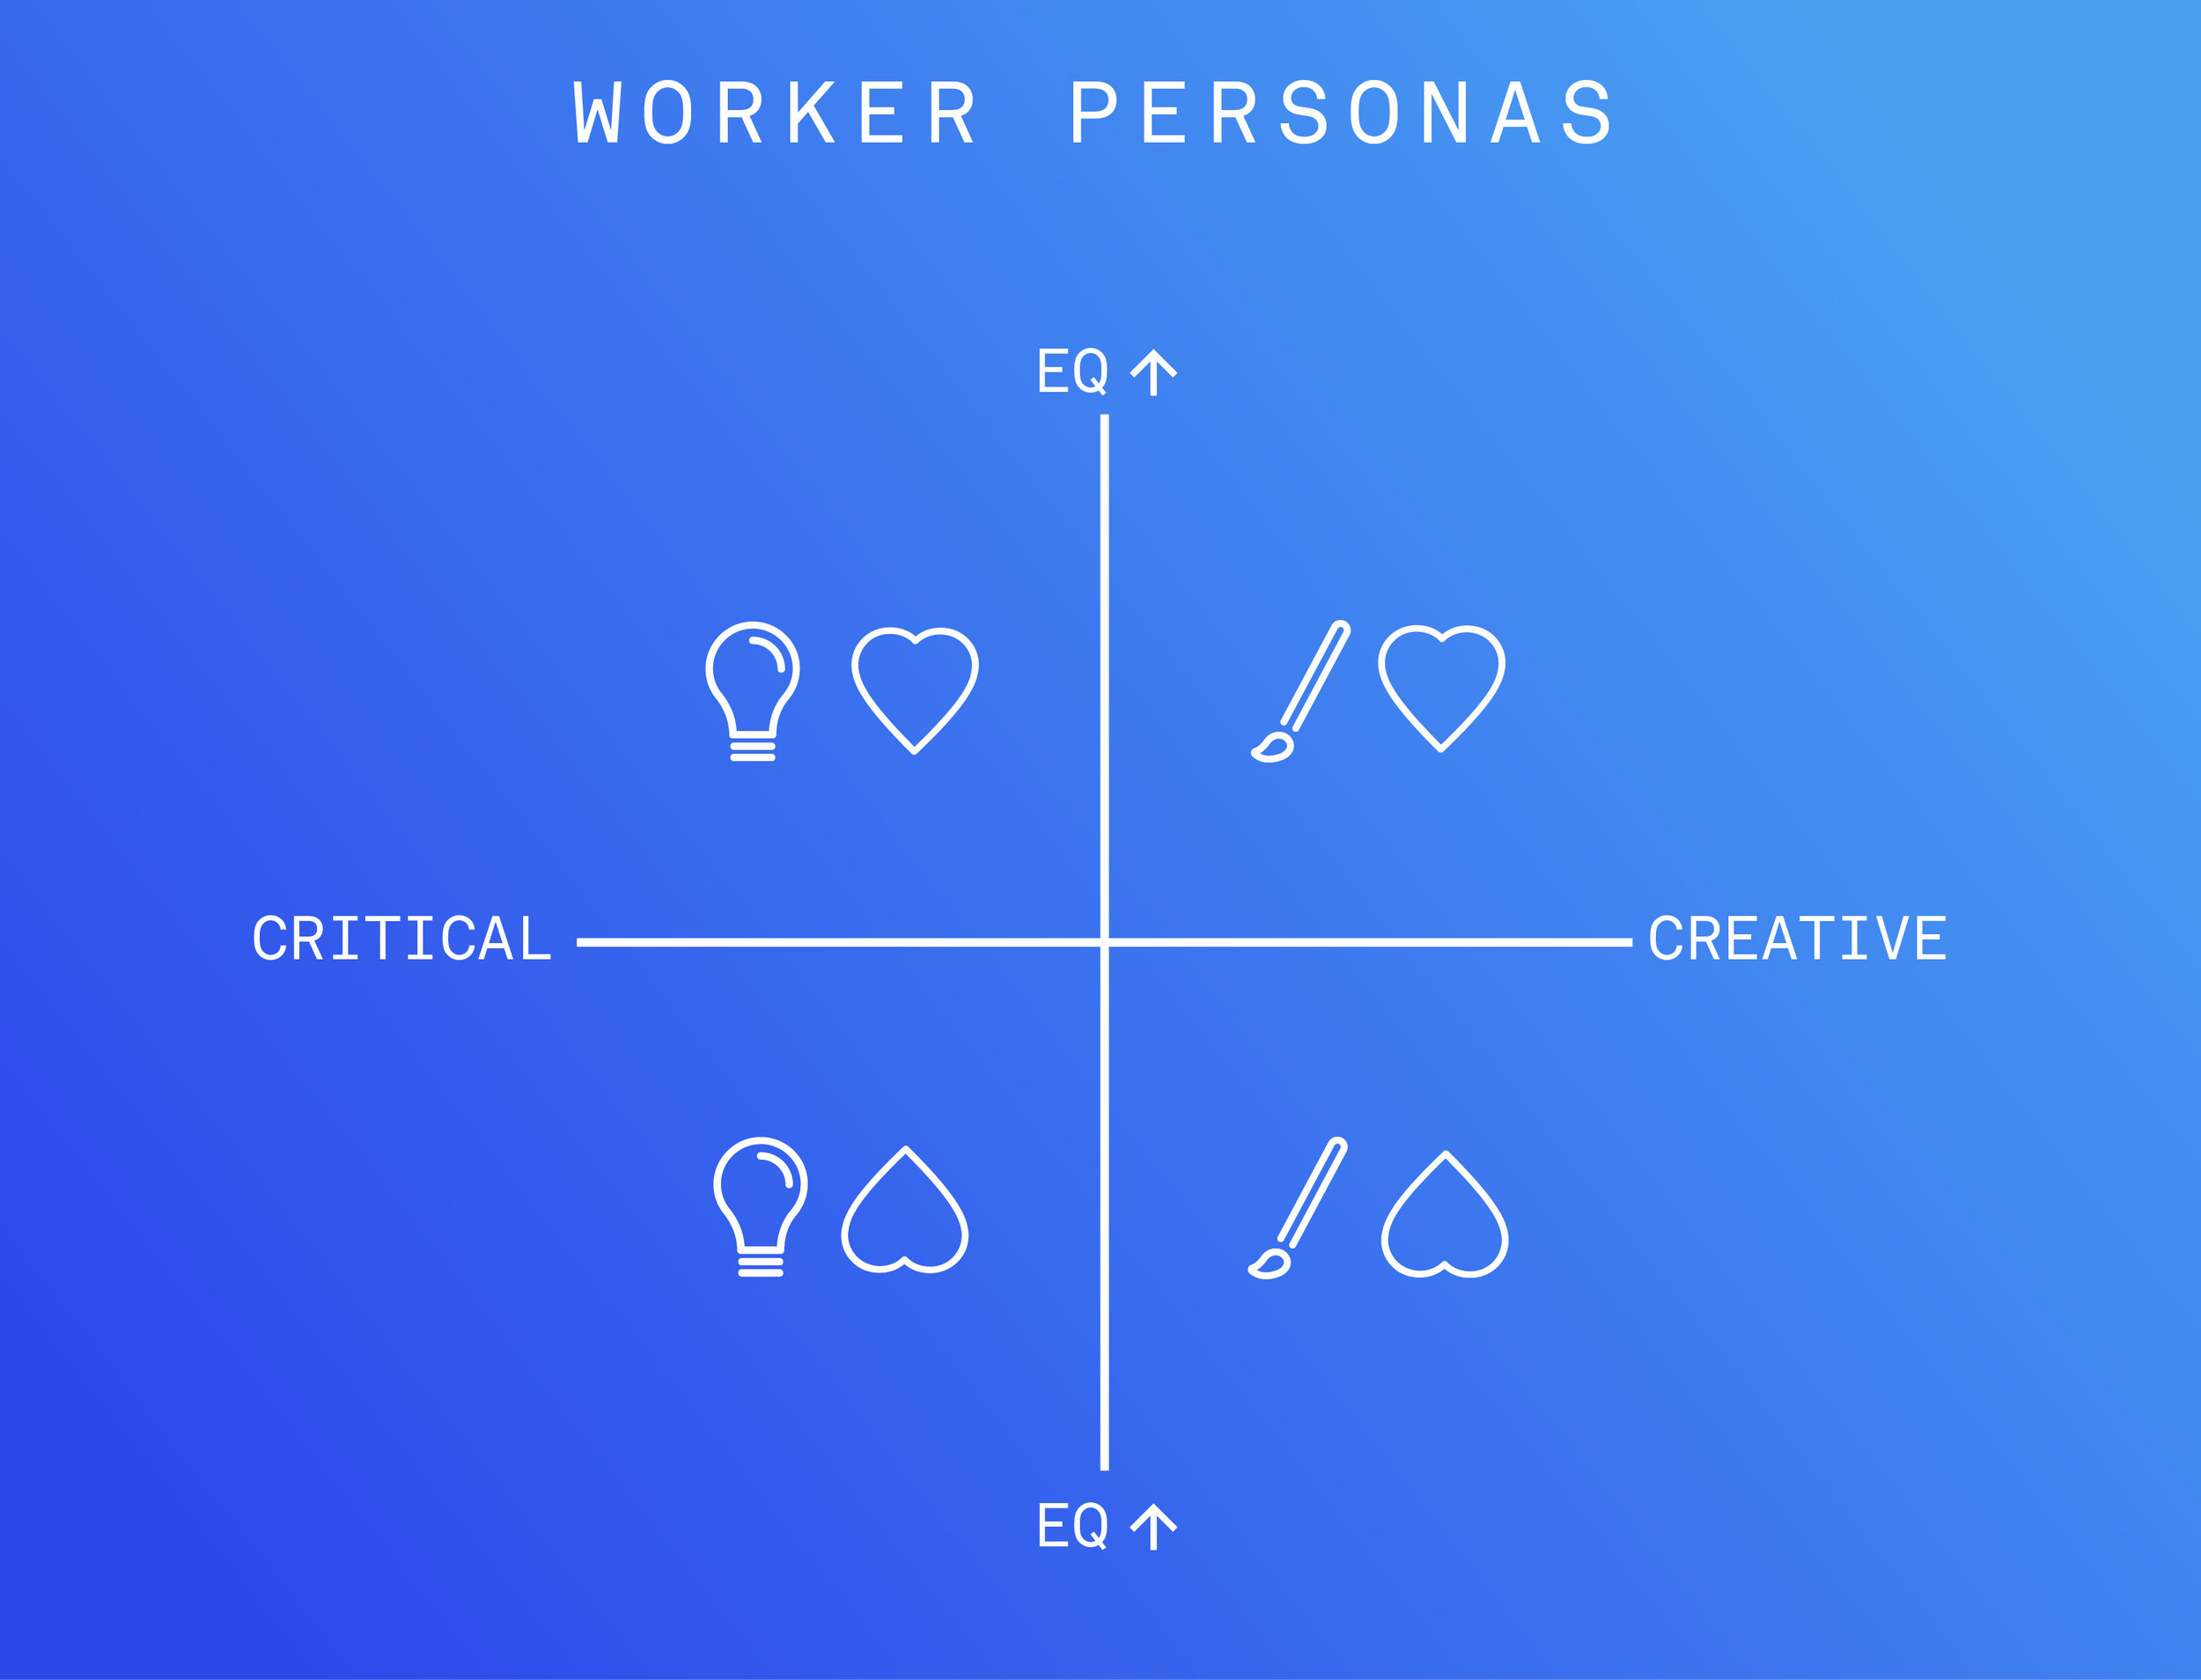 The four worker personas, based on relative prioritization of critical thinking, creative thinking, and emotional intuition.